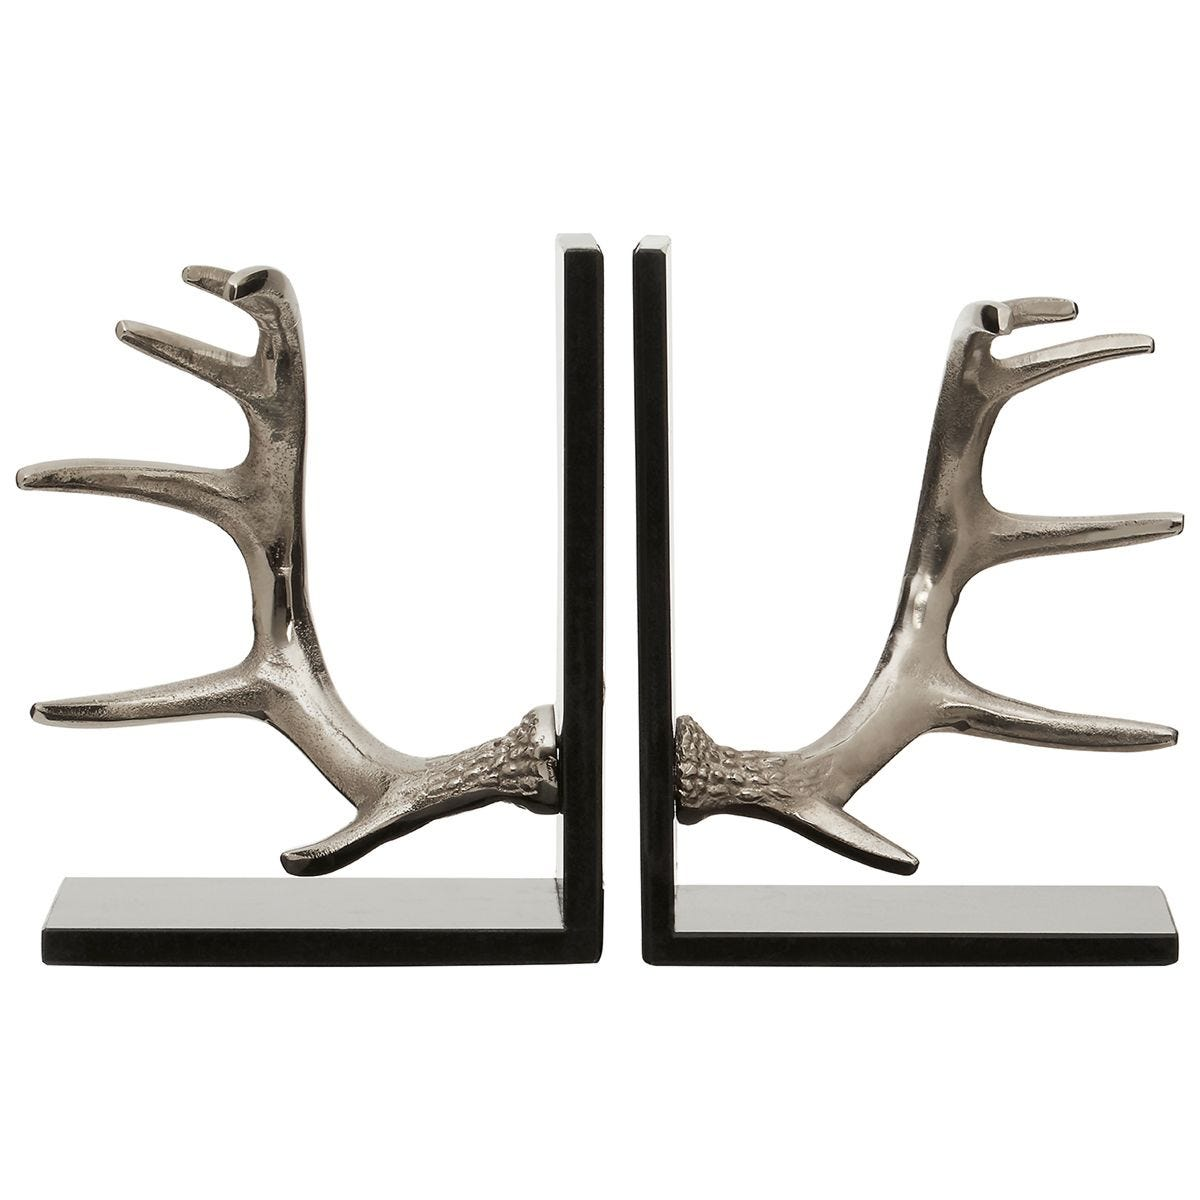 Premier Housewares Antler Set of 2 Bookends in Silver Finish with Marble Bases